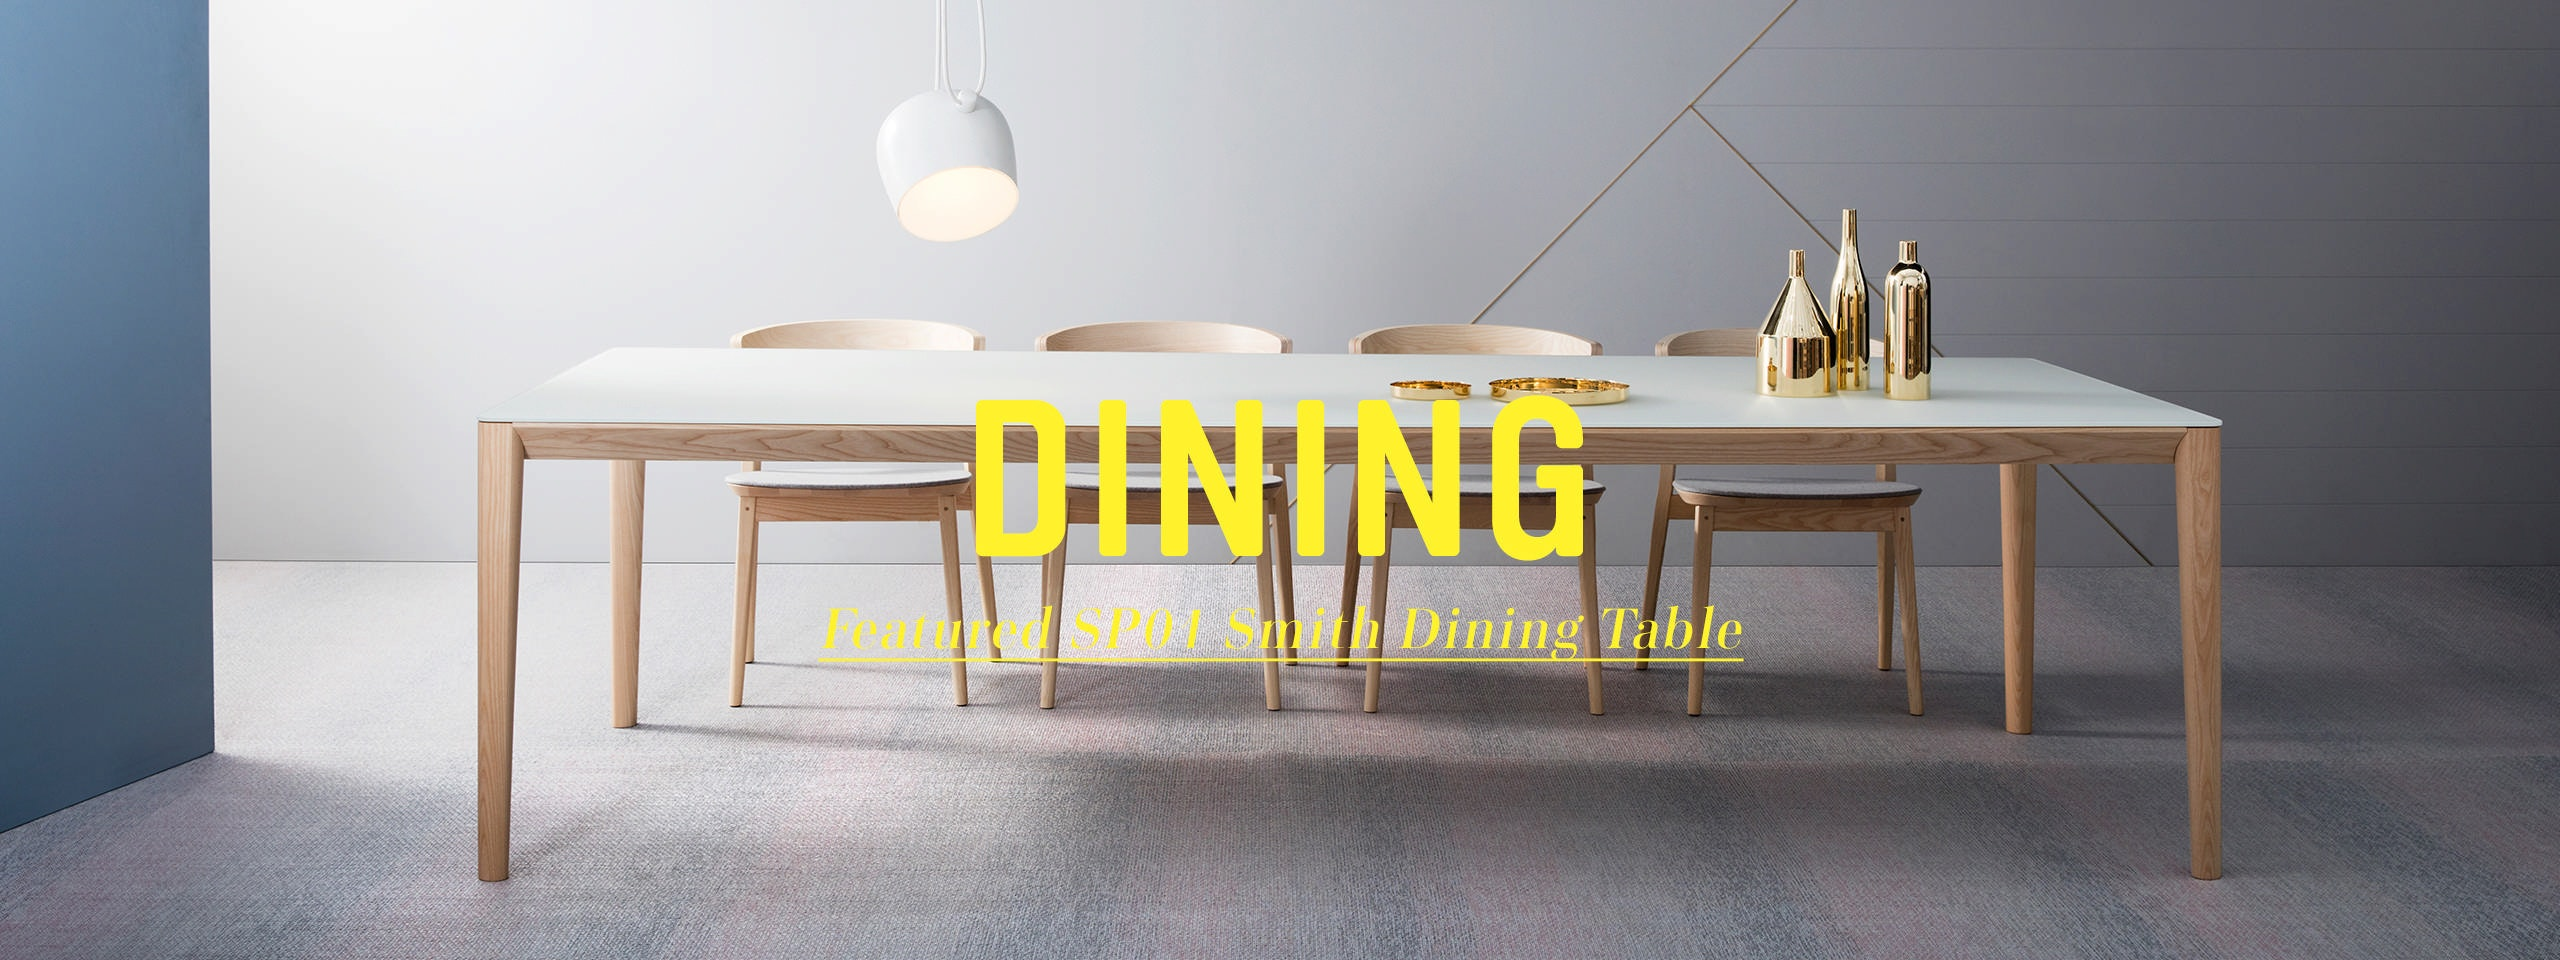 Space furniture design Interior Eat In Style With The Dining Range From Space Thrillist Dining Room Furniture Designer Tables Chairs Stools Space